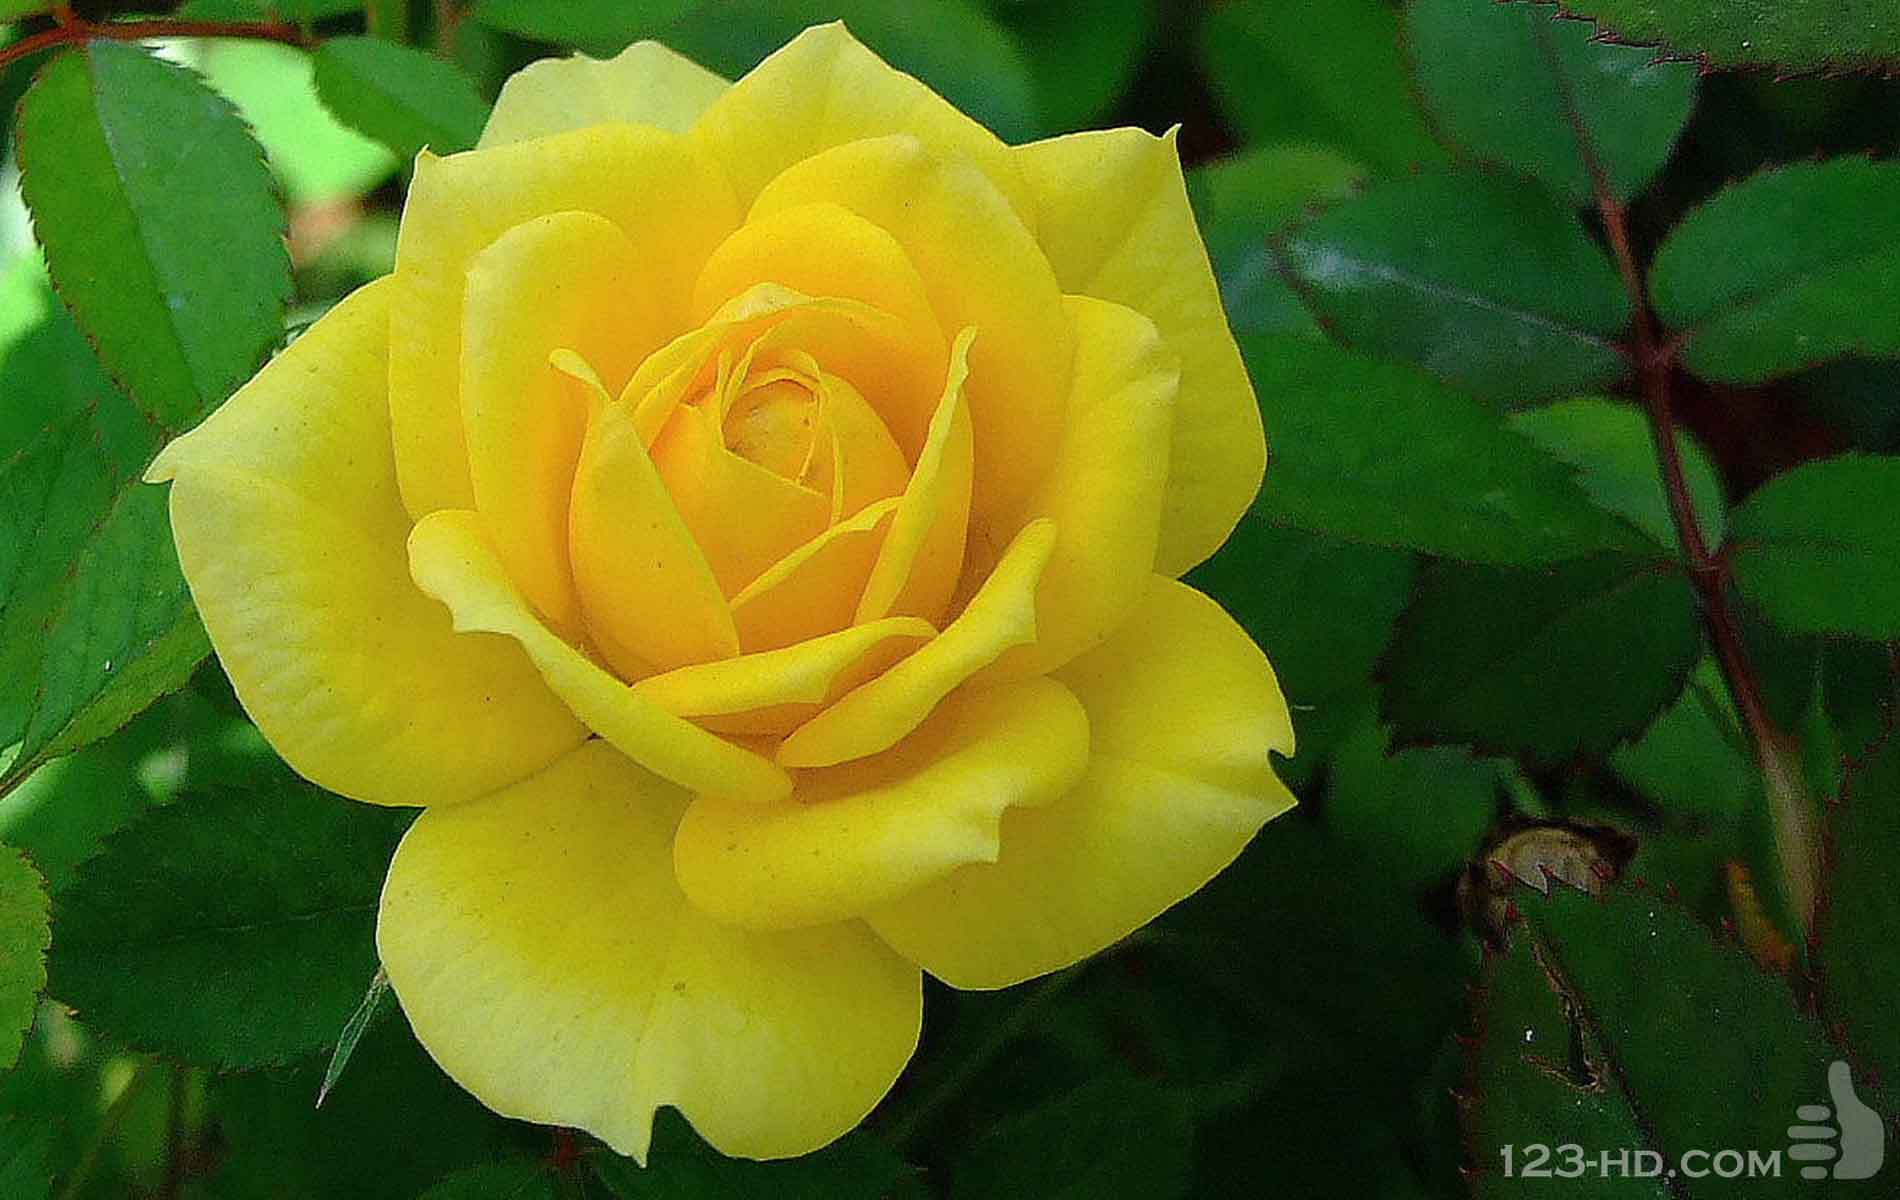 Yellow rose wallpapers high quality download free - Yellow rose images hd ...